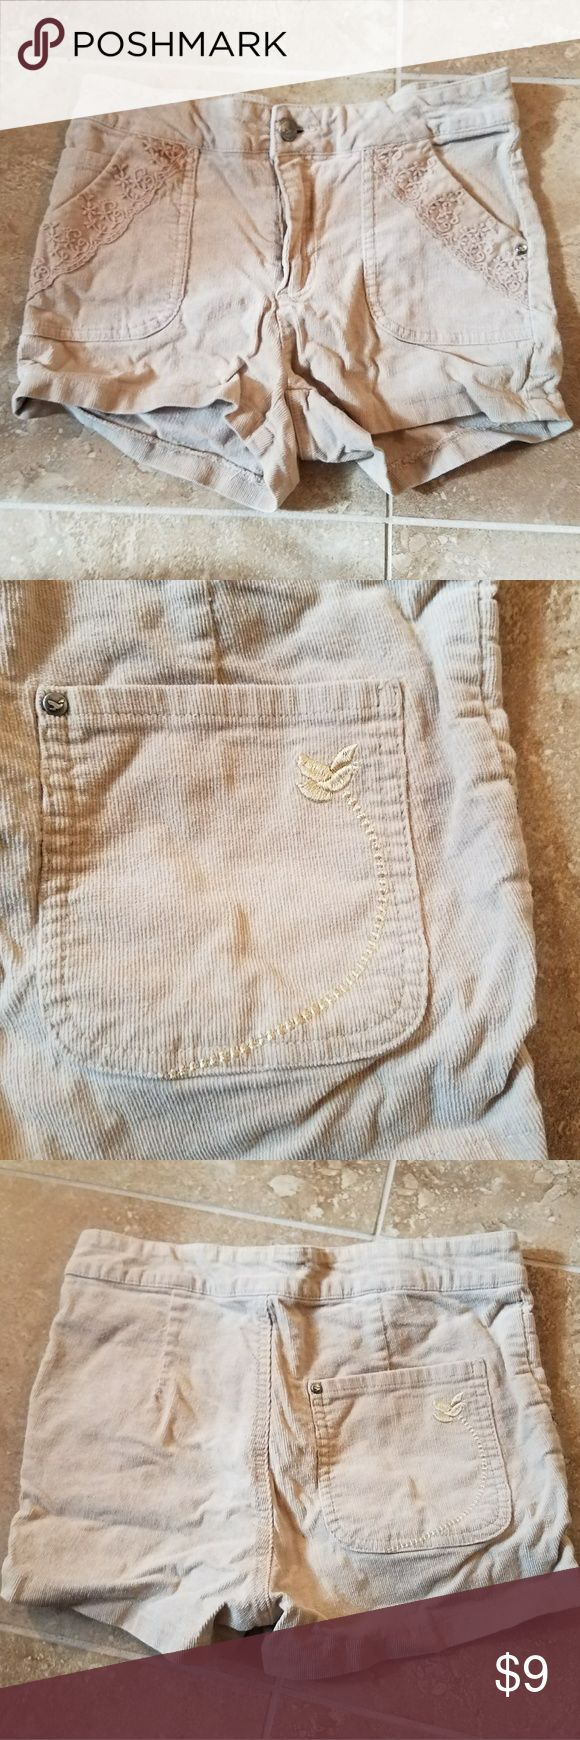 Beige shorts Very good condition beige shorts. Size 3 Shorts